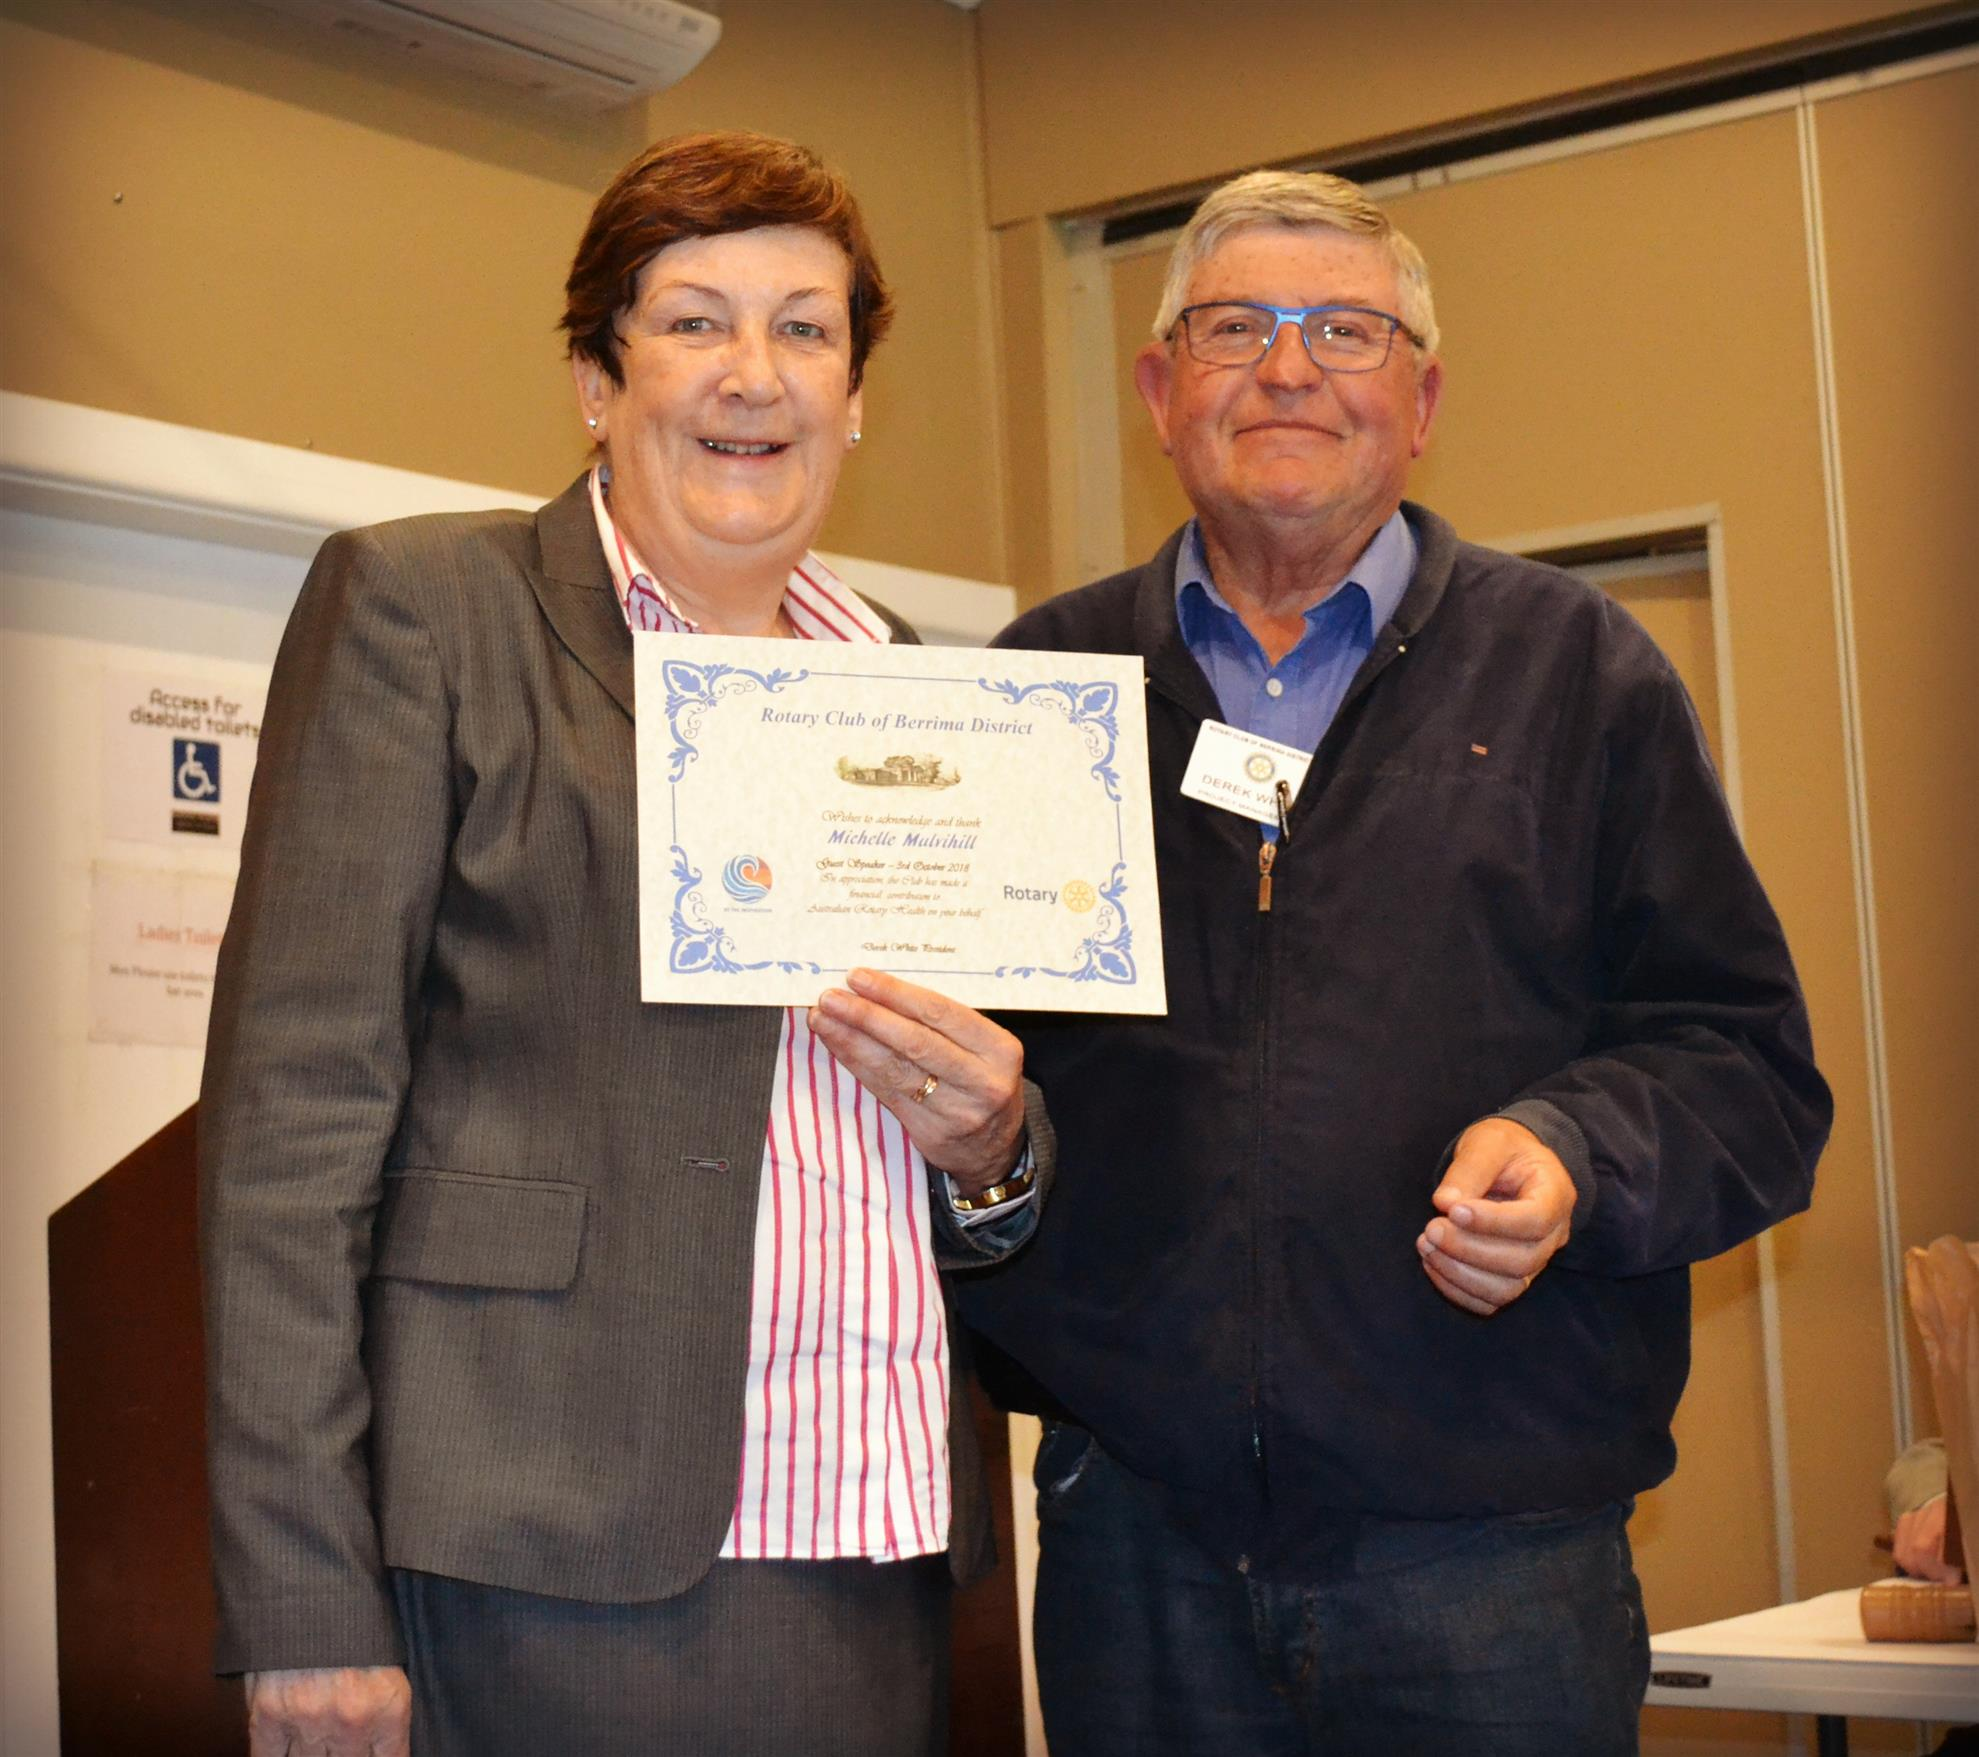 Stories | Rotary Club of Berrima District